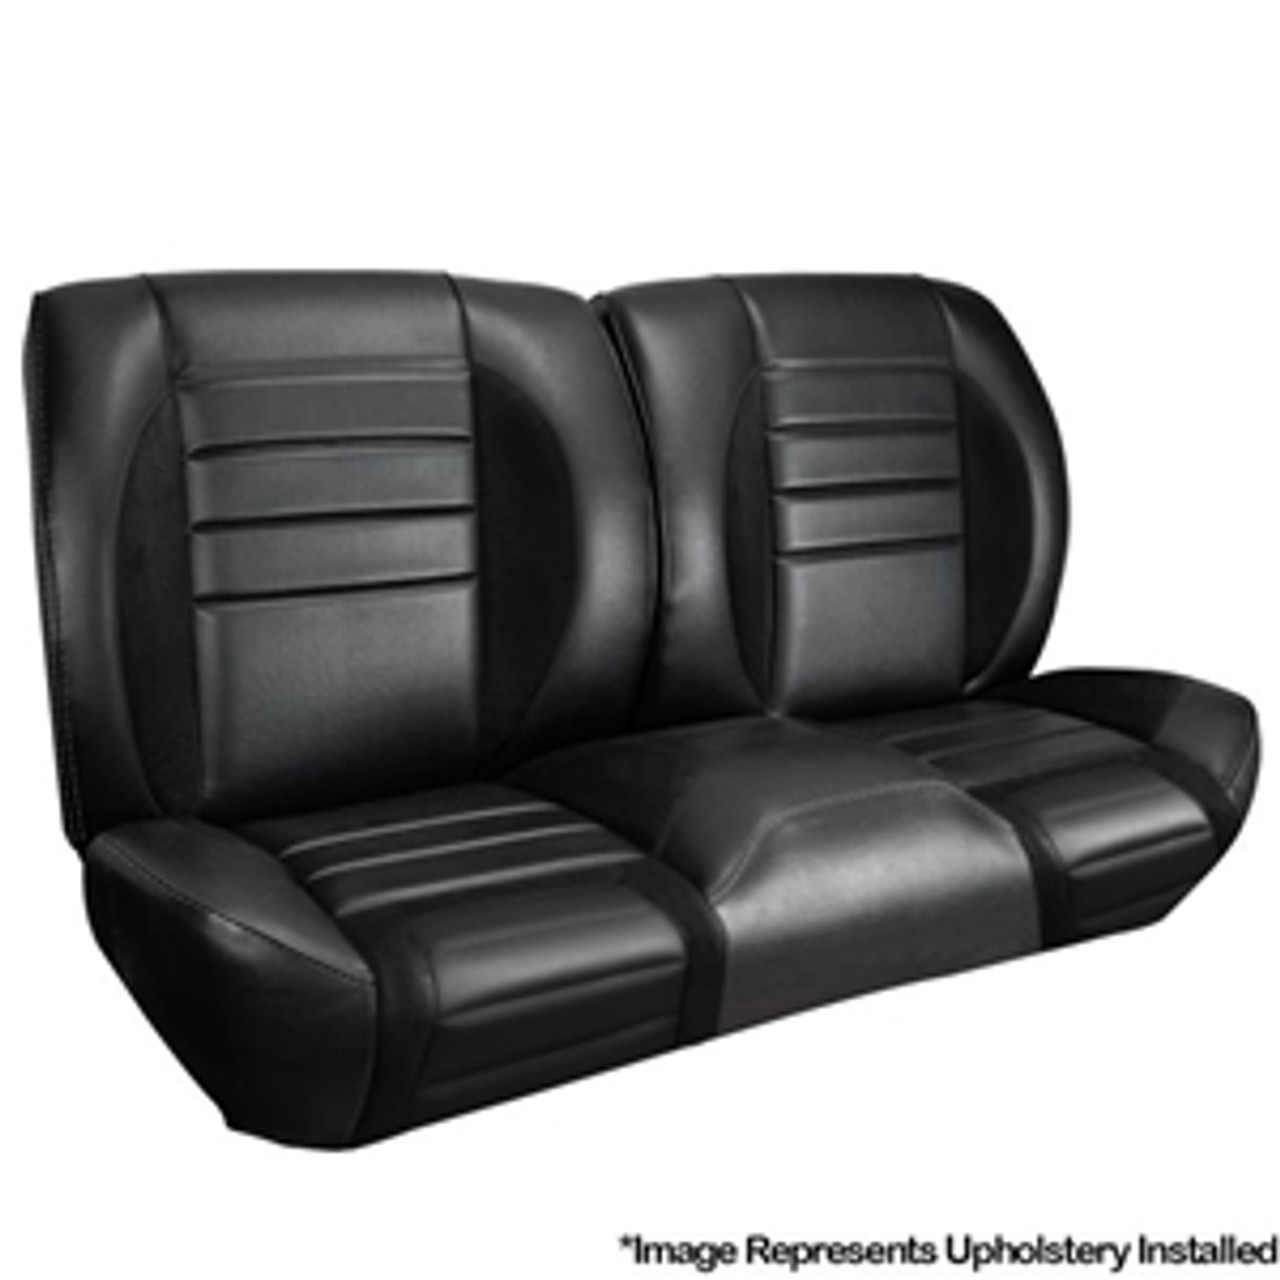 1965 TMI Chevelle or El Camino Sport R Style Bench Seat Cover Kit